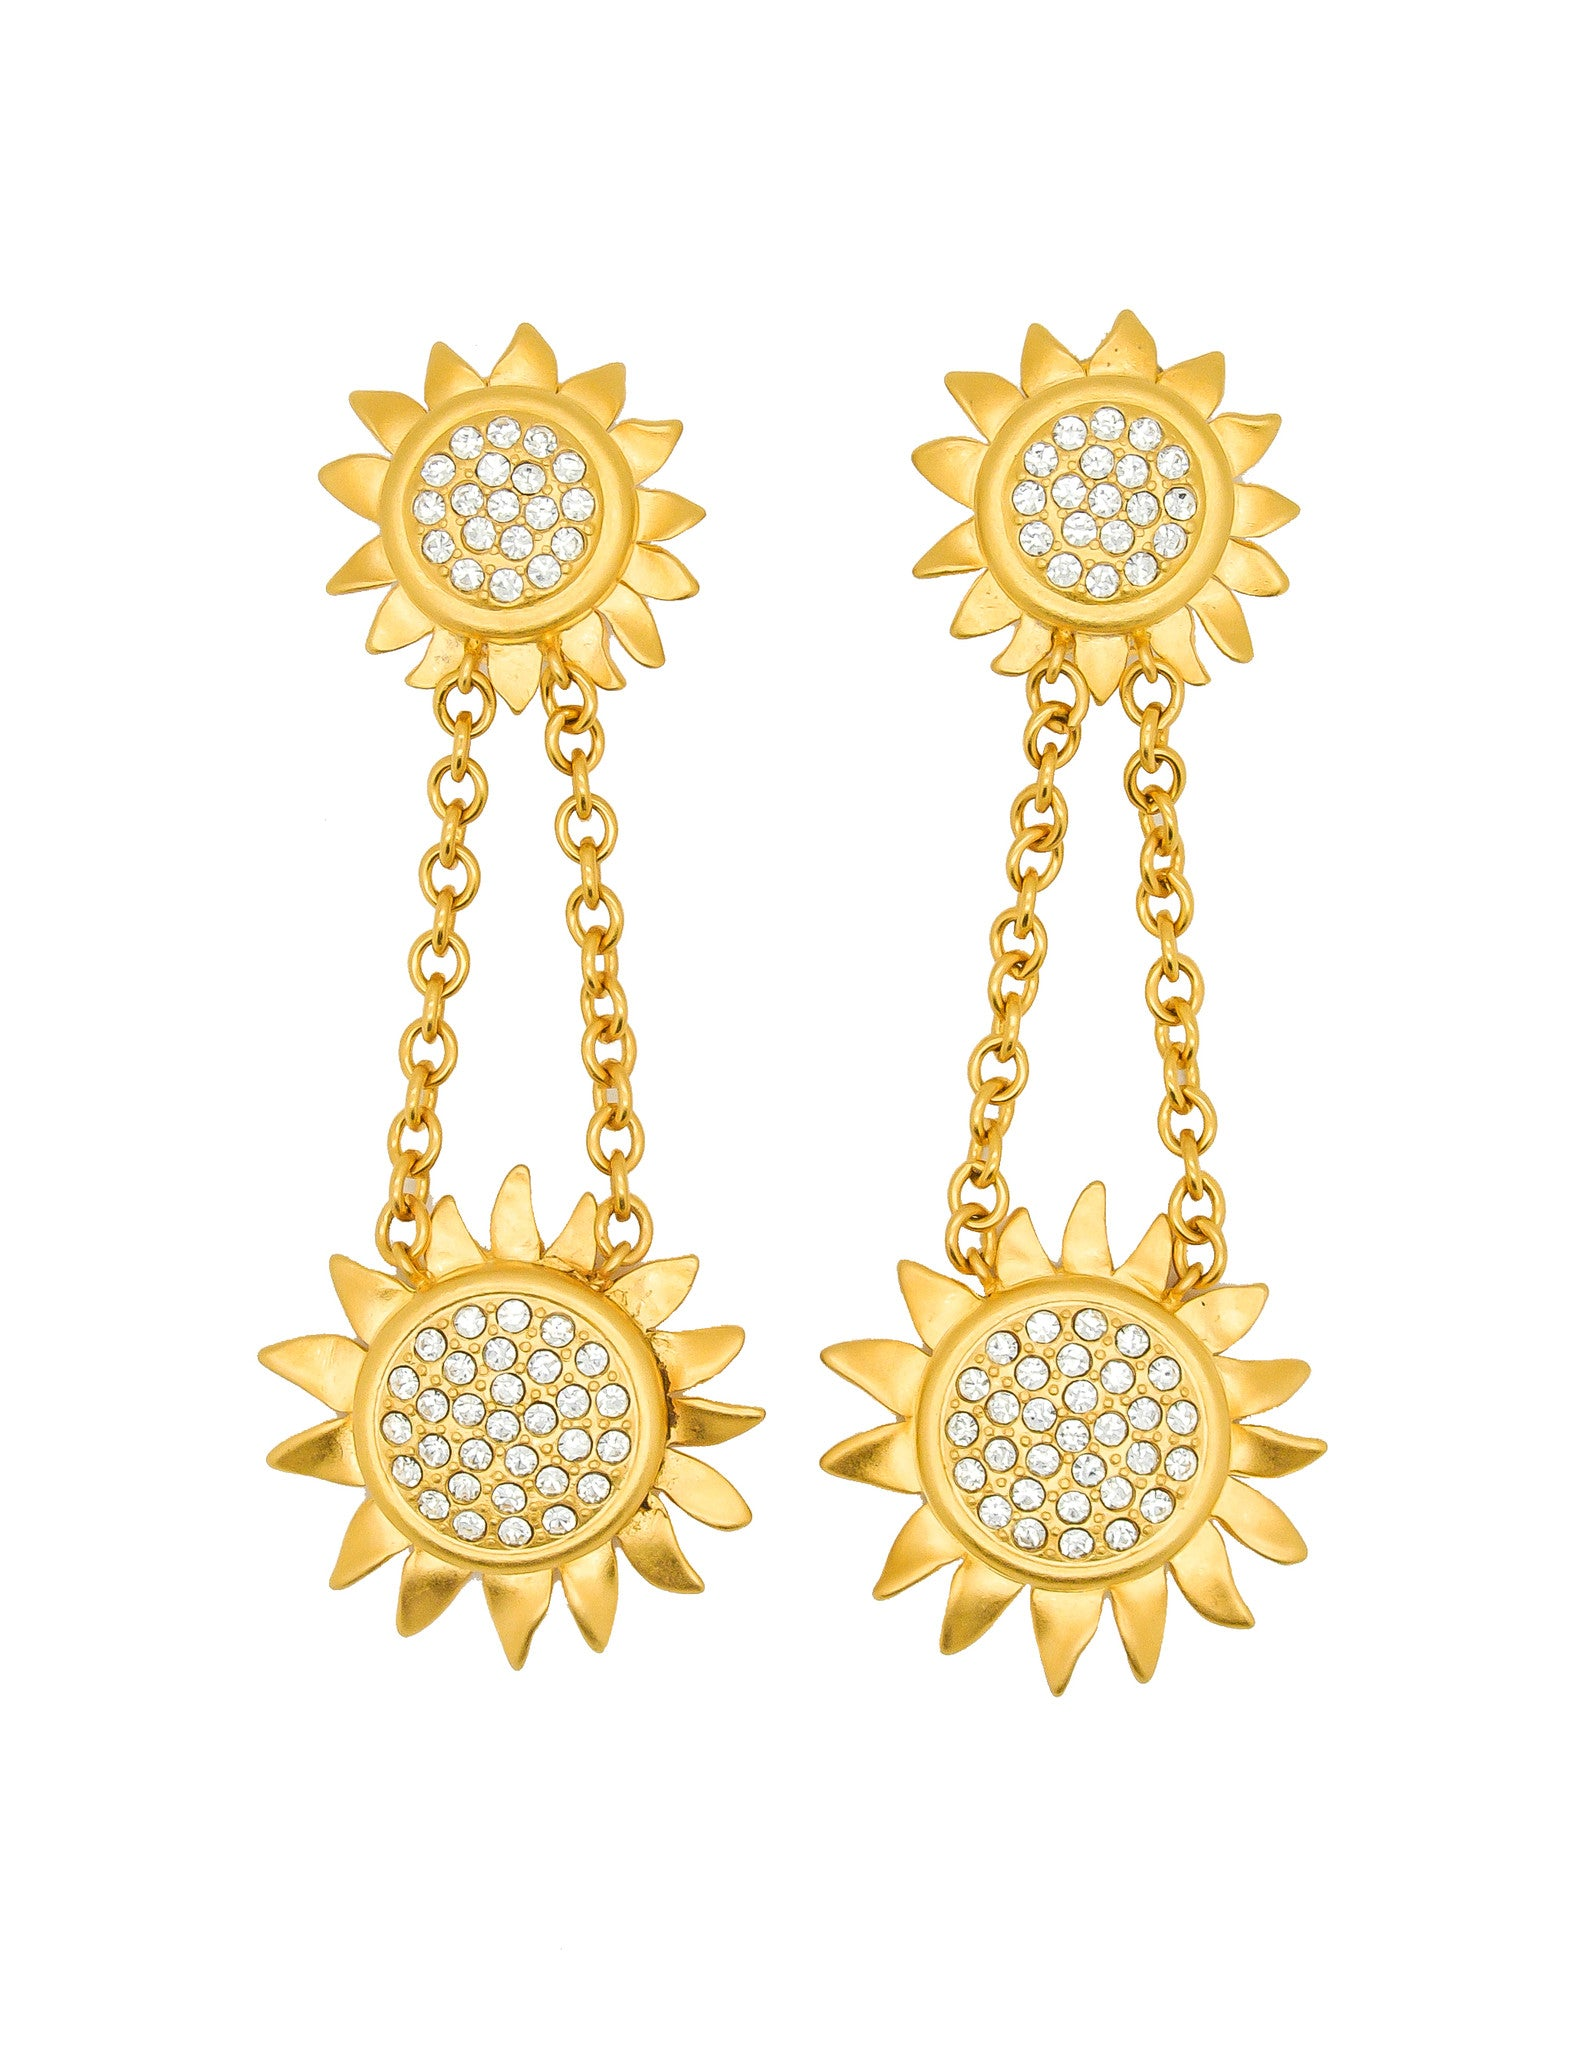 Karl Lagerfeld Vintage Gold Rhinestone Sunflower Earrings - Amarcord Vintage Fashion  - 1